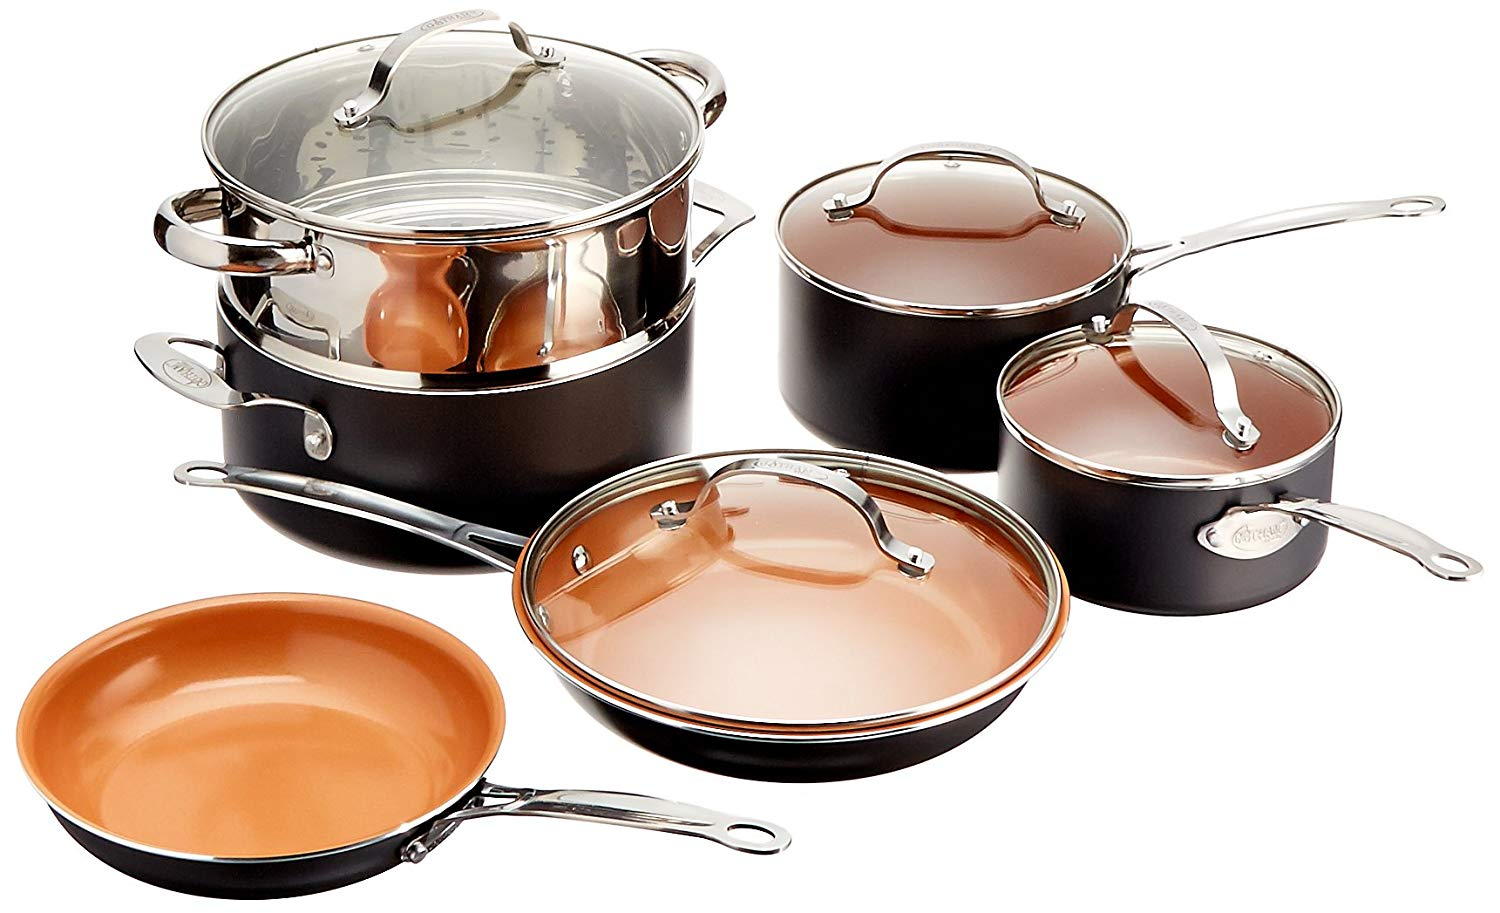 gotham steel 10 piece non-stick cookware set